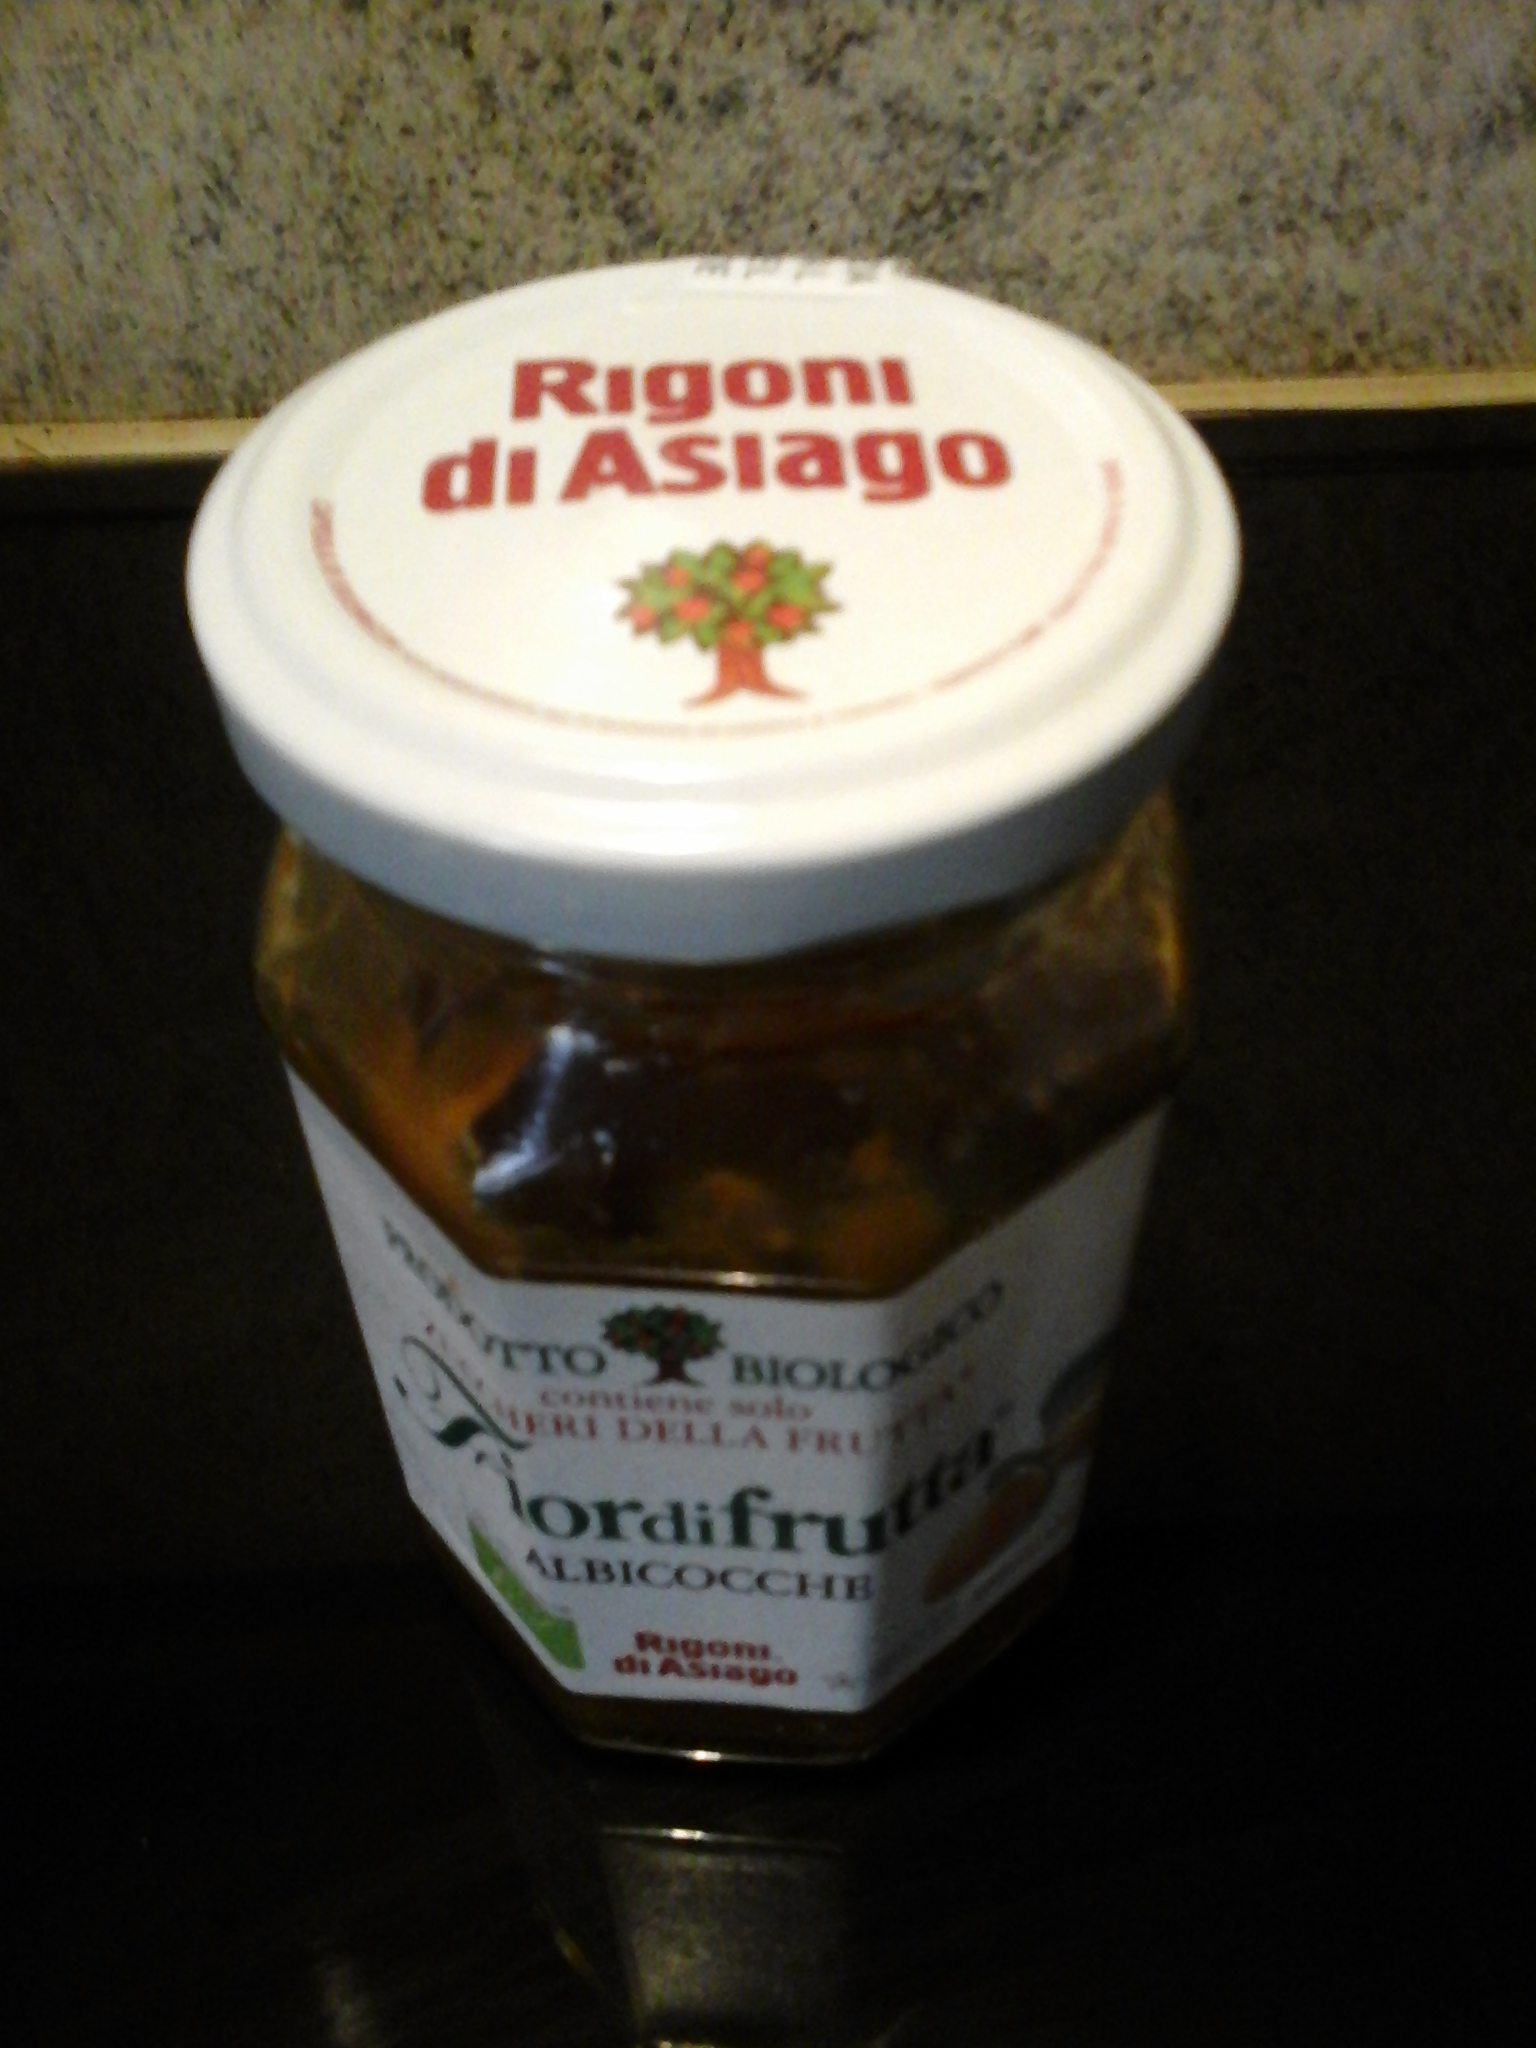 Rigoni di asiago mediterranealowcost for Compro casa asiago